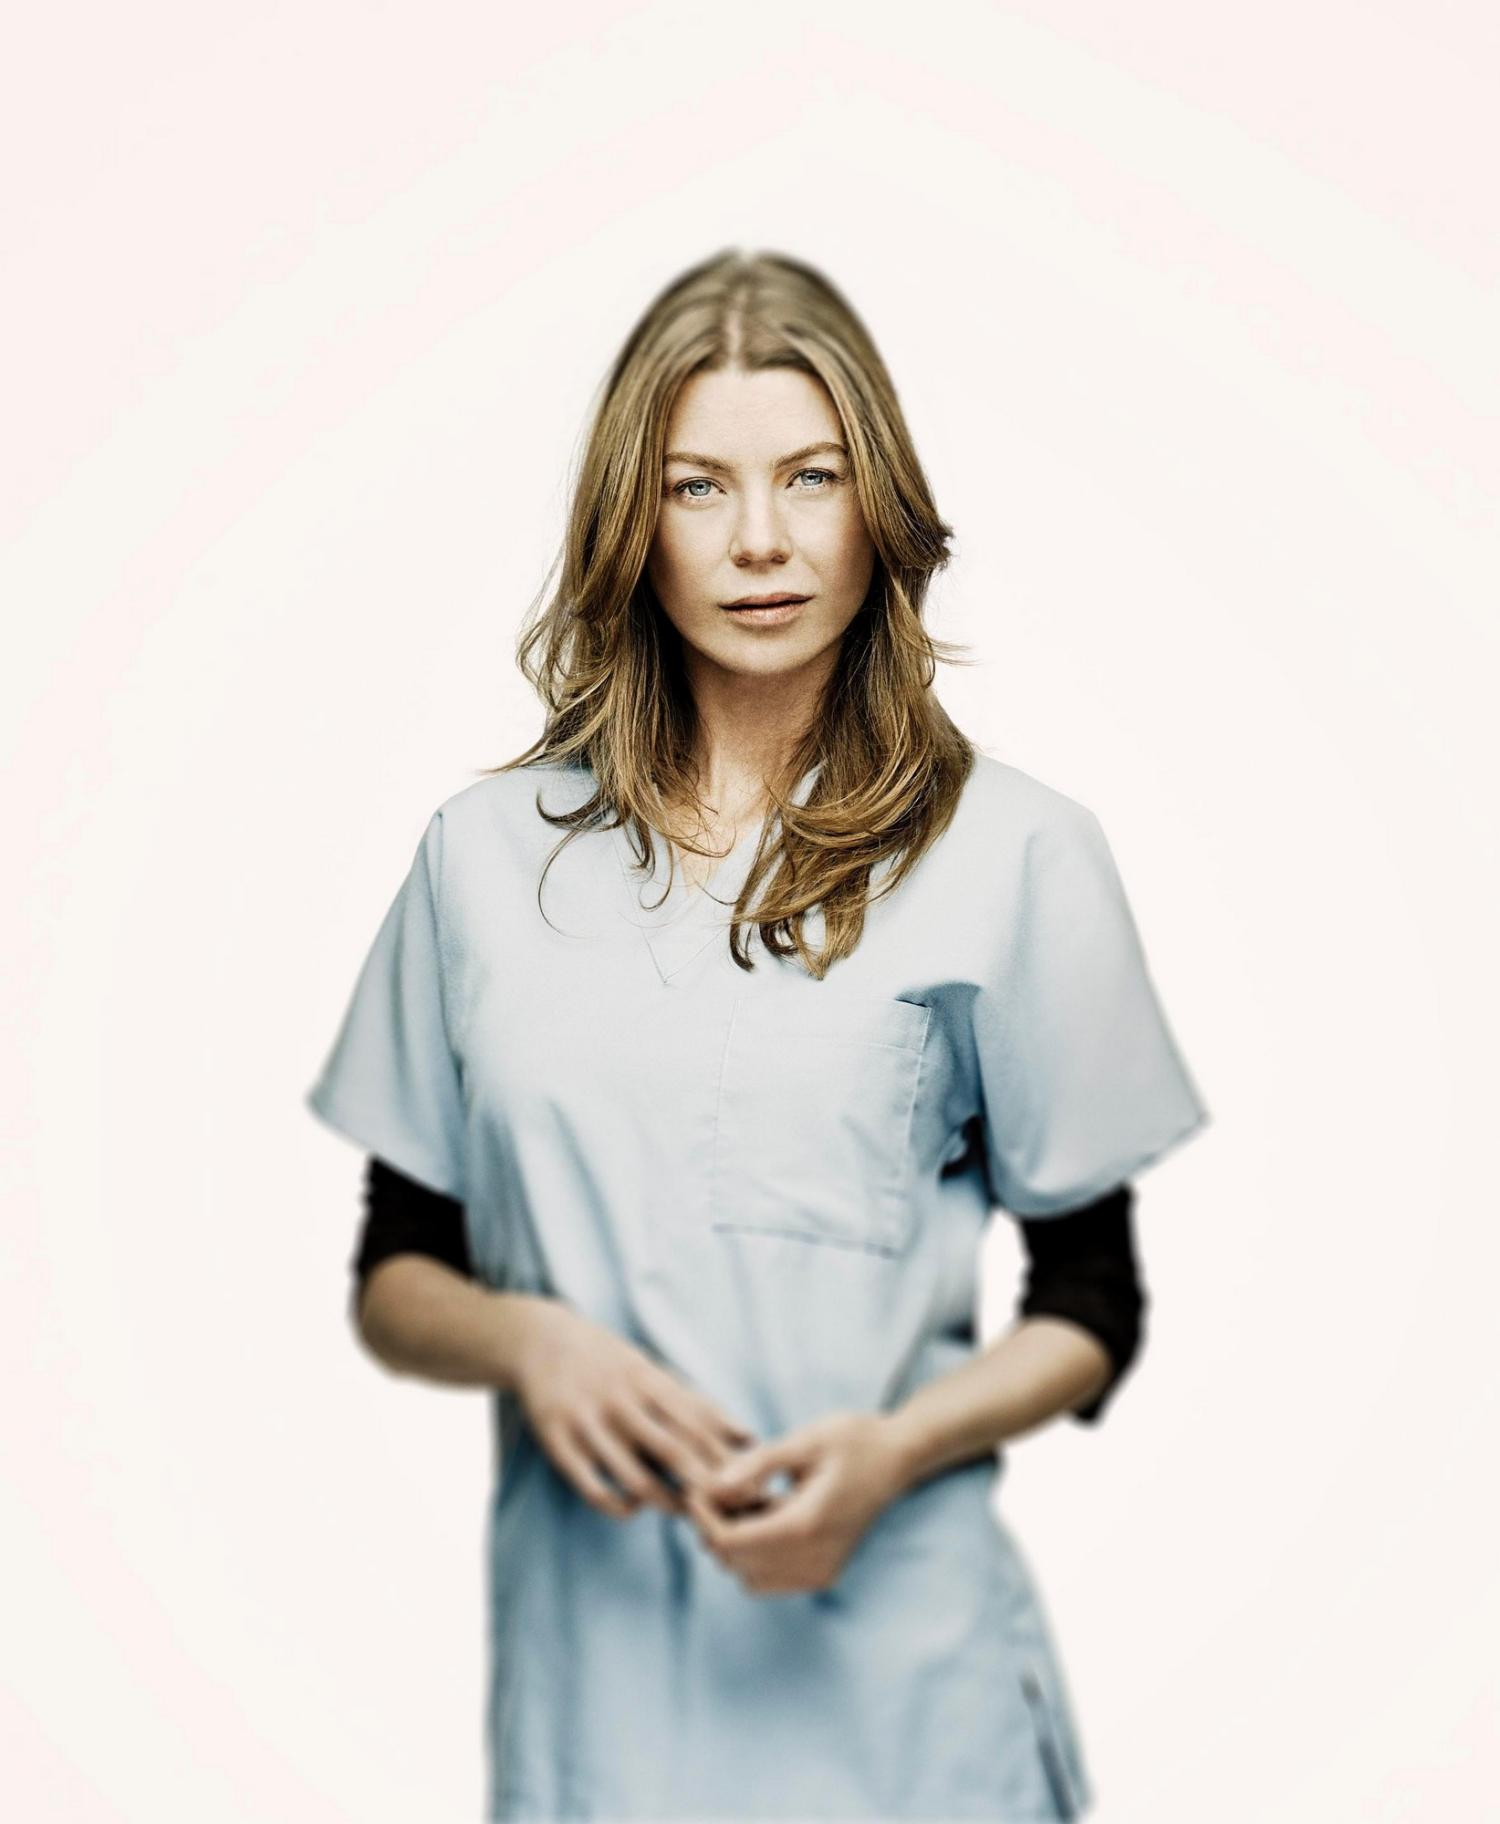 Season 3 (Grey\'s Anatomy) | Grey\'s Anatomy Universe Wiki | FANDOM ...